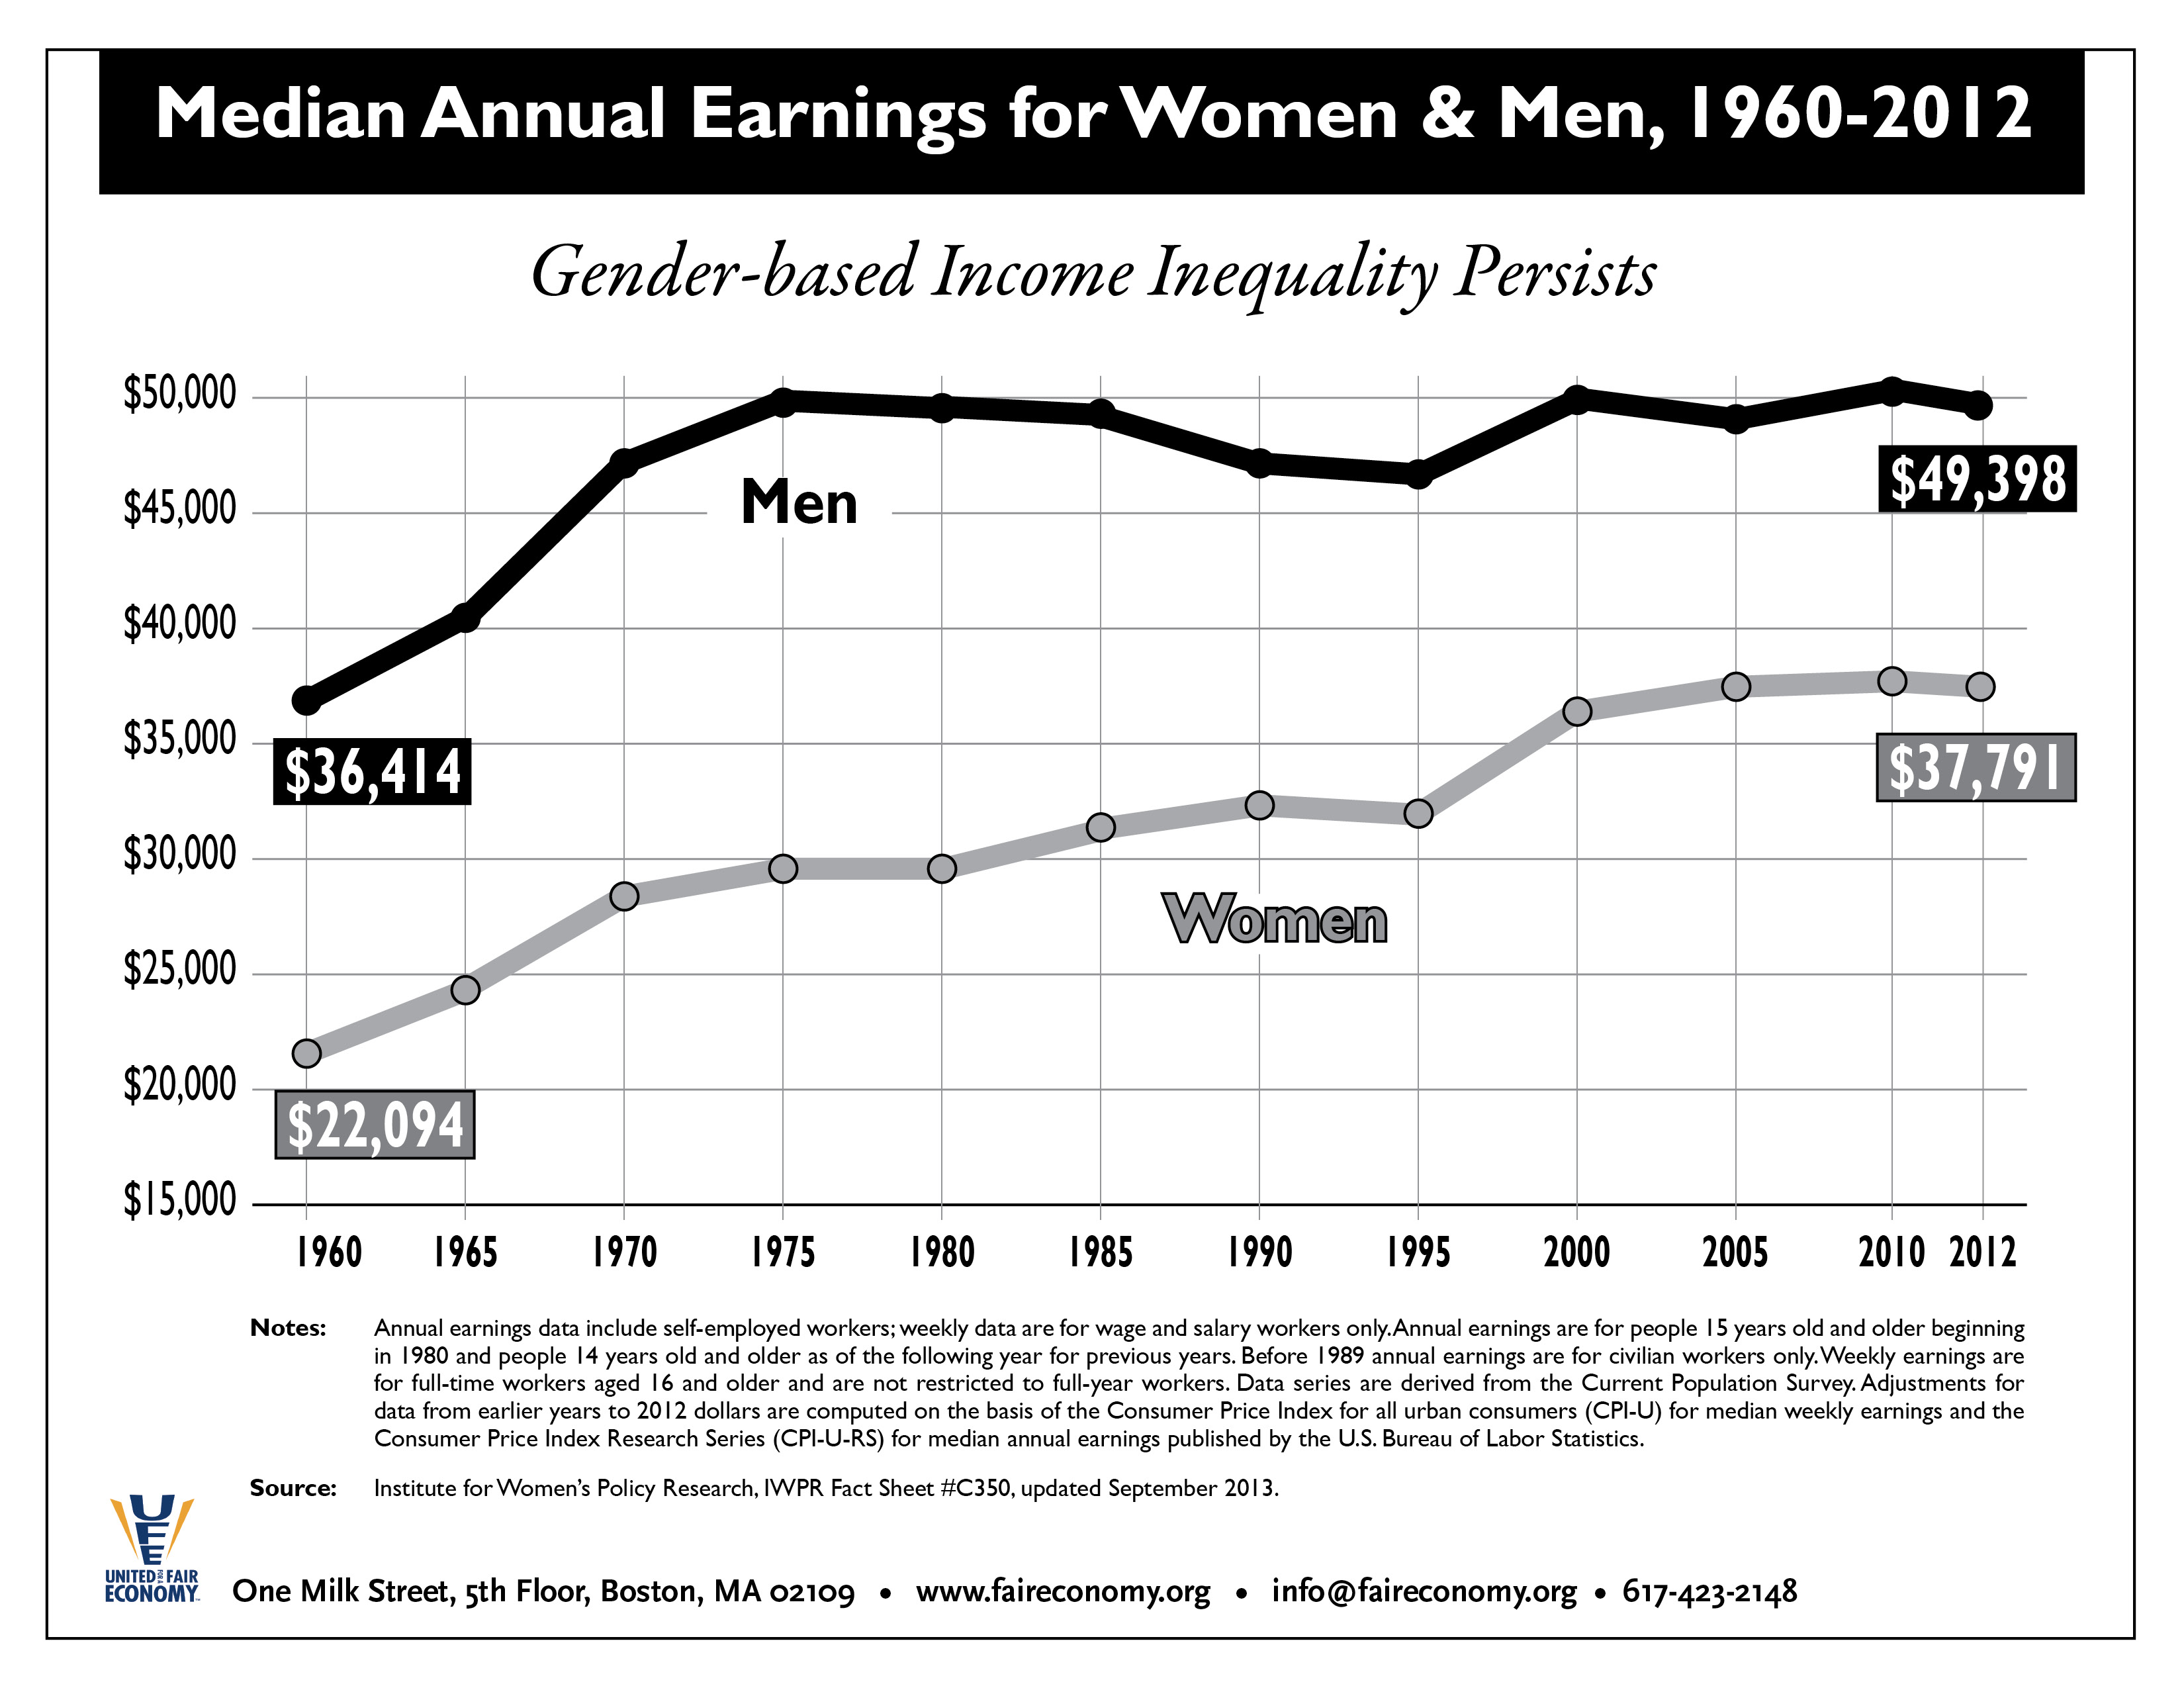 Median_Annual_Income_by_Gender_1960-2012.jpg